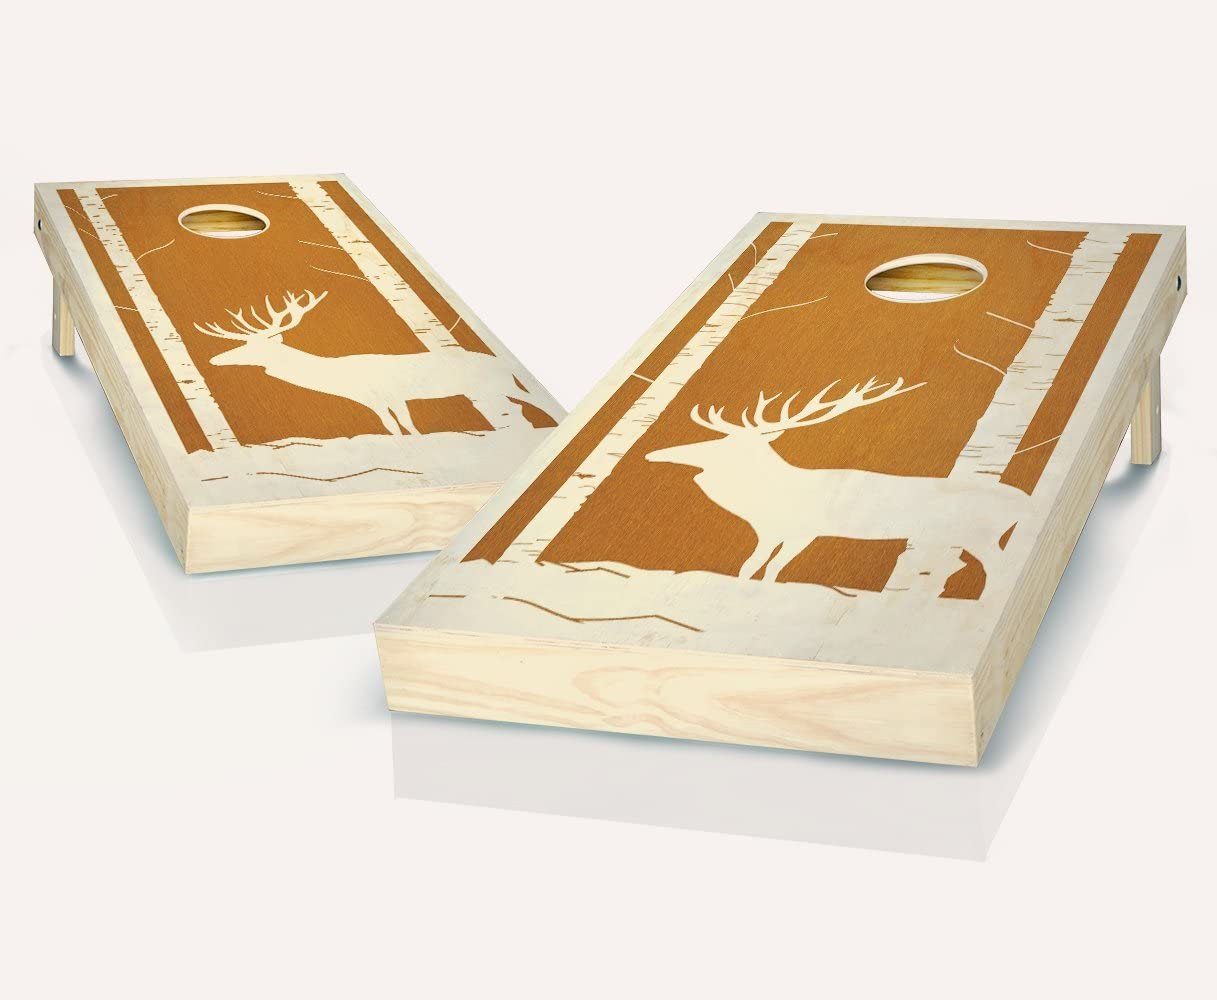 BuckウッズMaple Stained Cornhole Boards withのセット8 Cornhole Bags